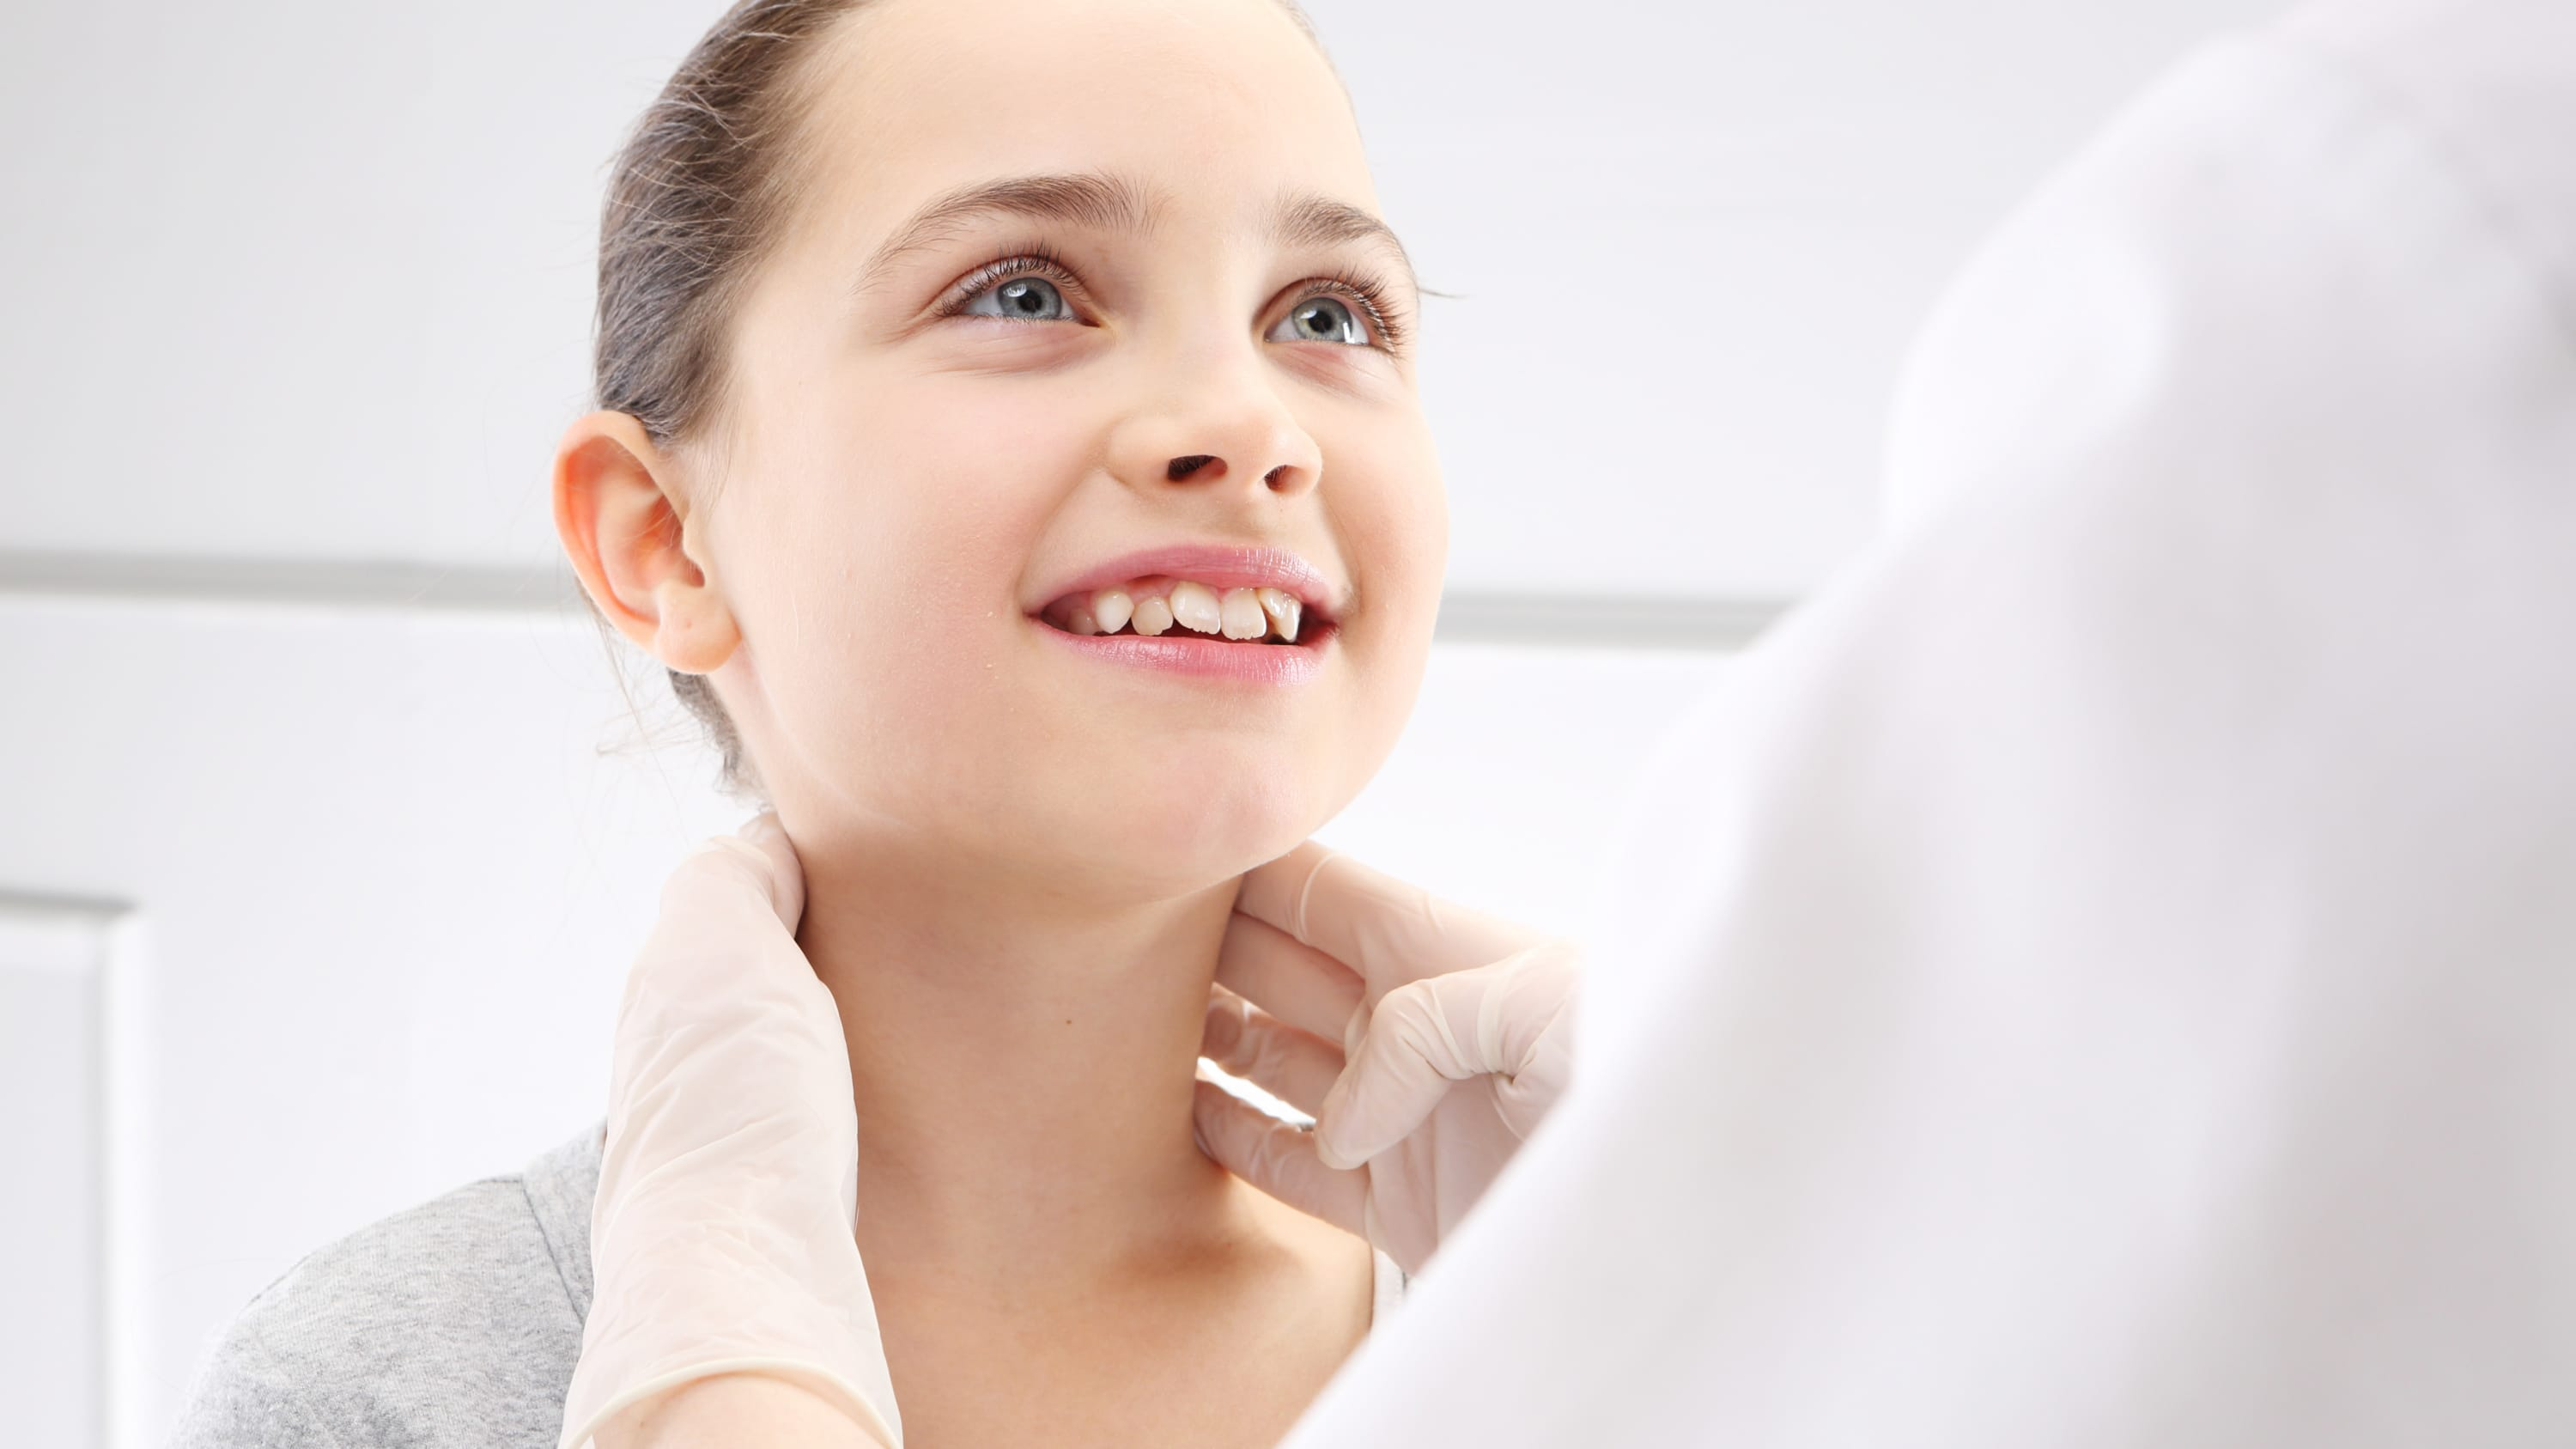 A young girl who might have strep throat is examined by her doctor